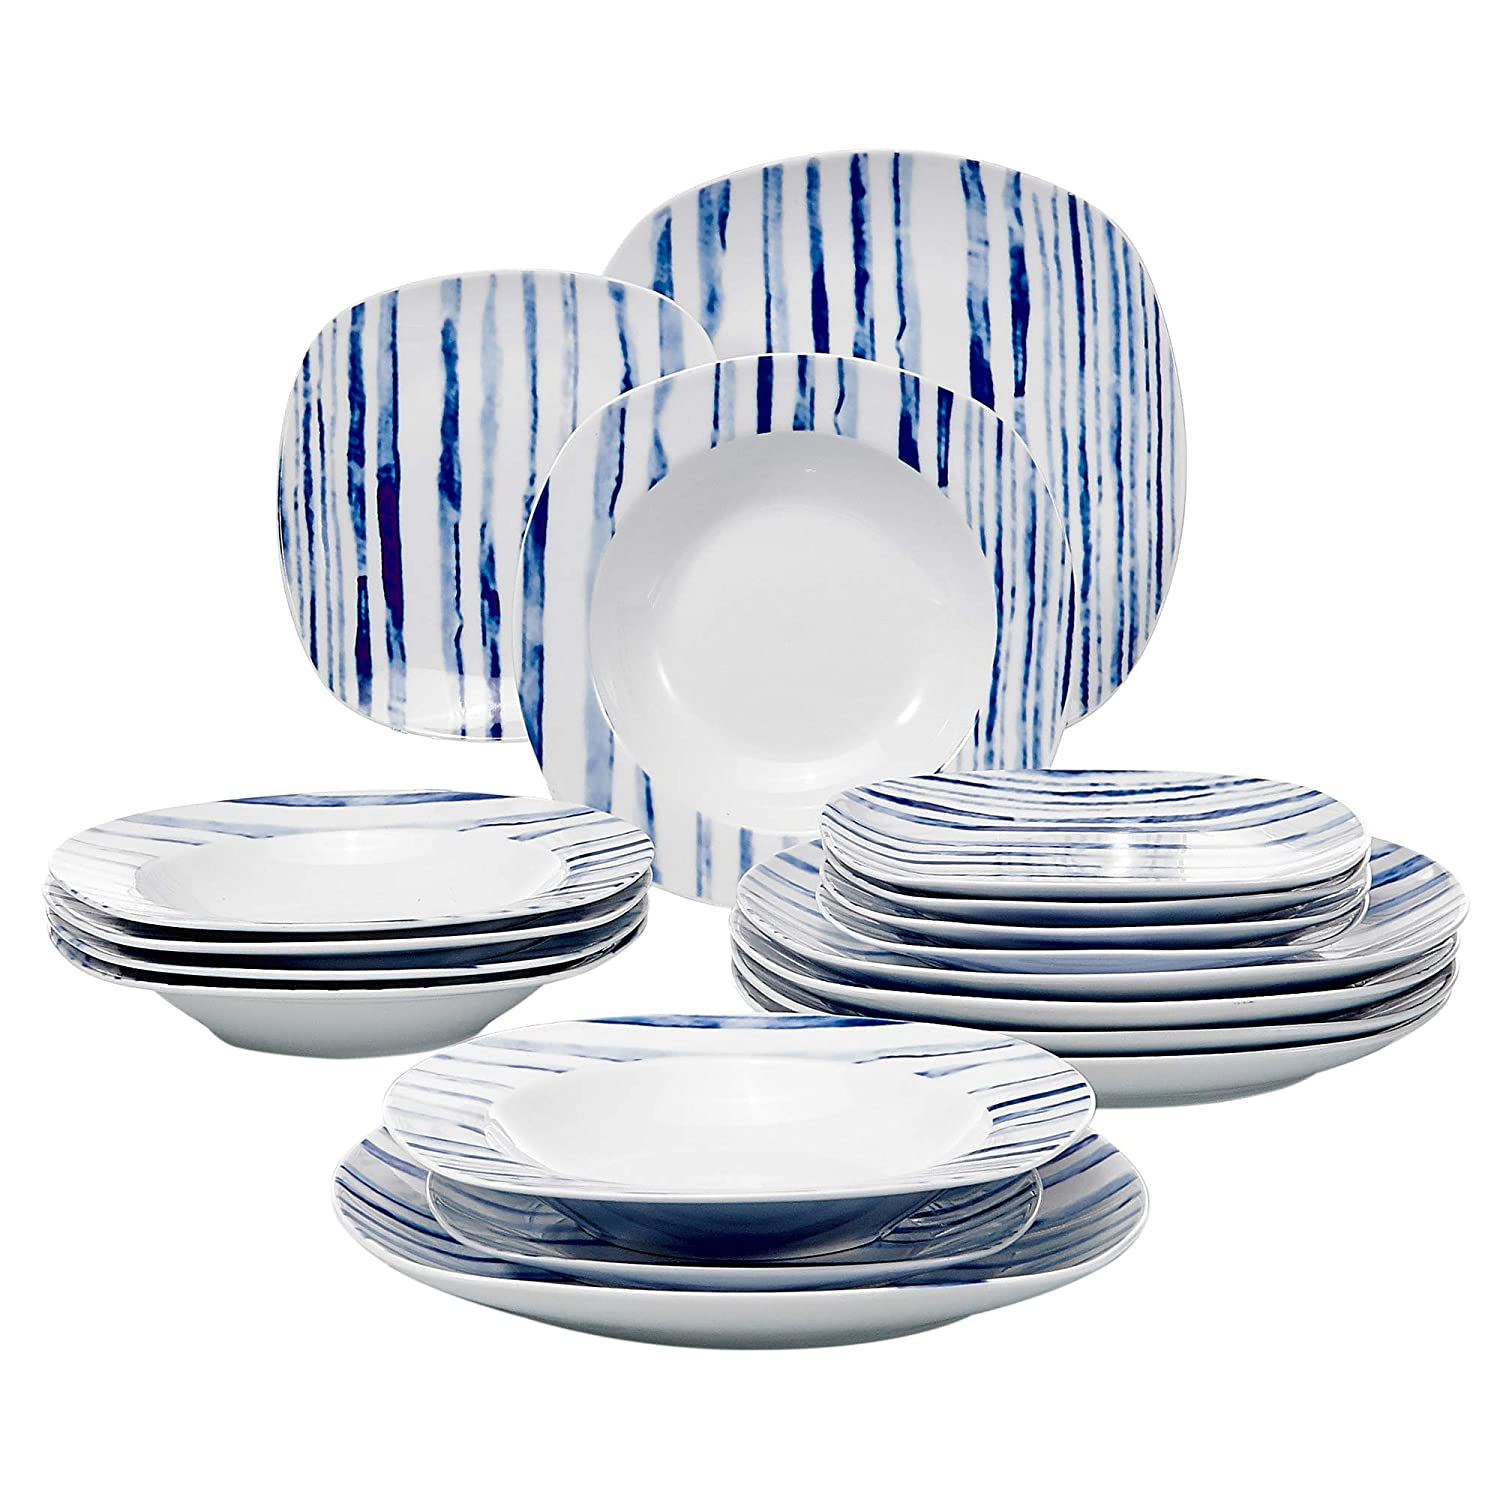 Service for 6 Dessert Plate JOYCE Series VEWEET 18-Piece Porcelain Dinnerware Set Ivory White Ceramic Plate Sets with Dinner Plate Soup Plate Boheme Blue